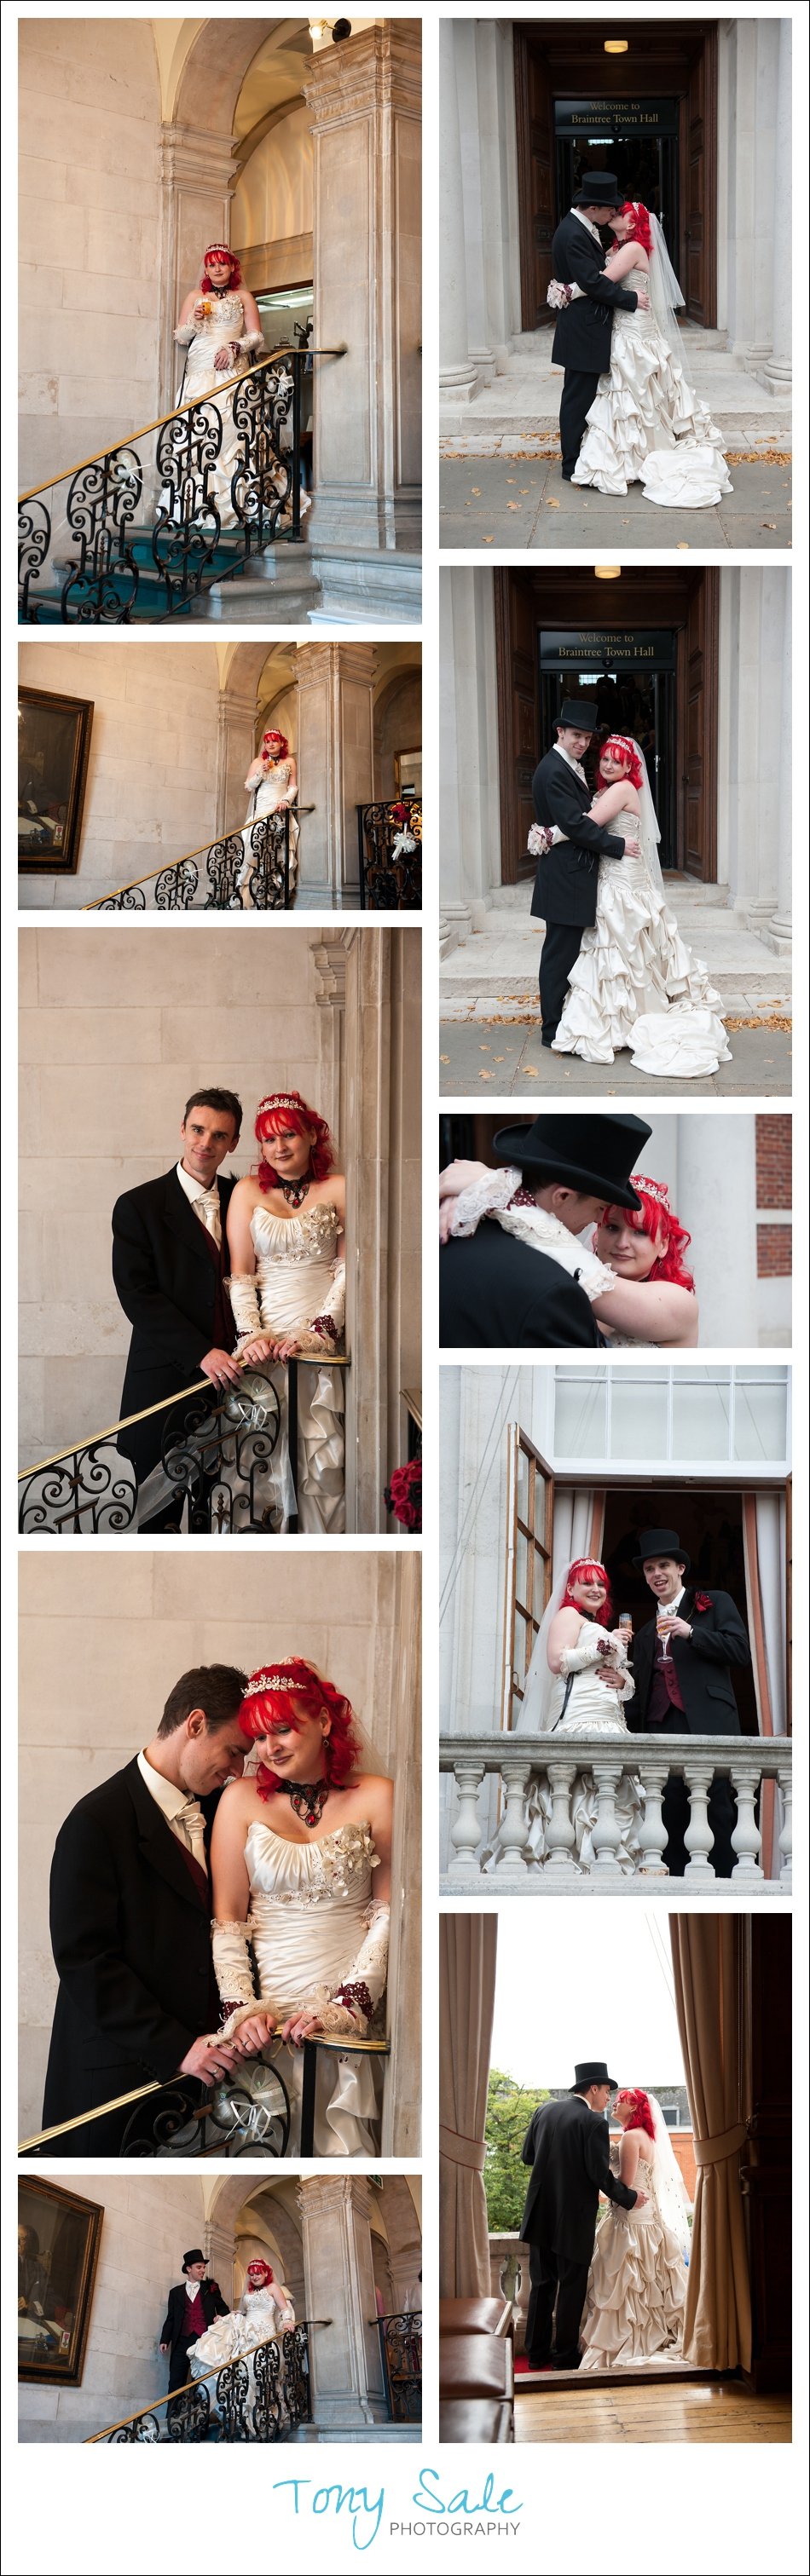 Photos of the Bride & Groom